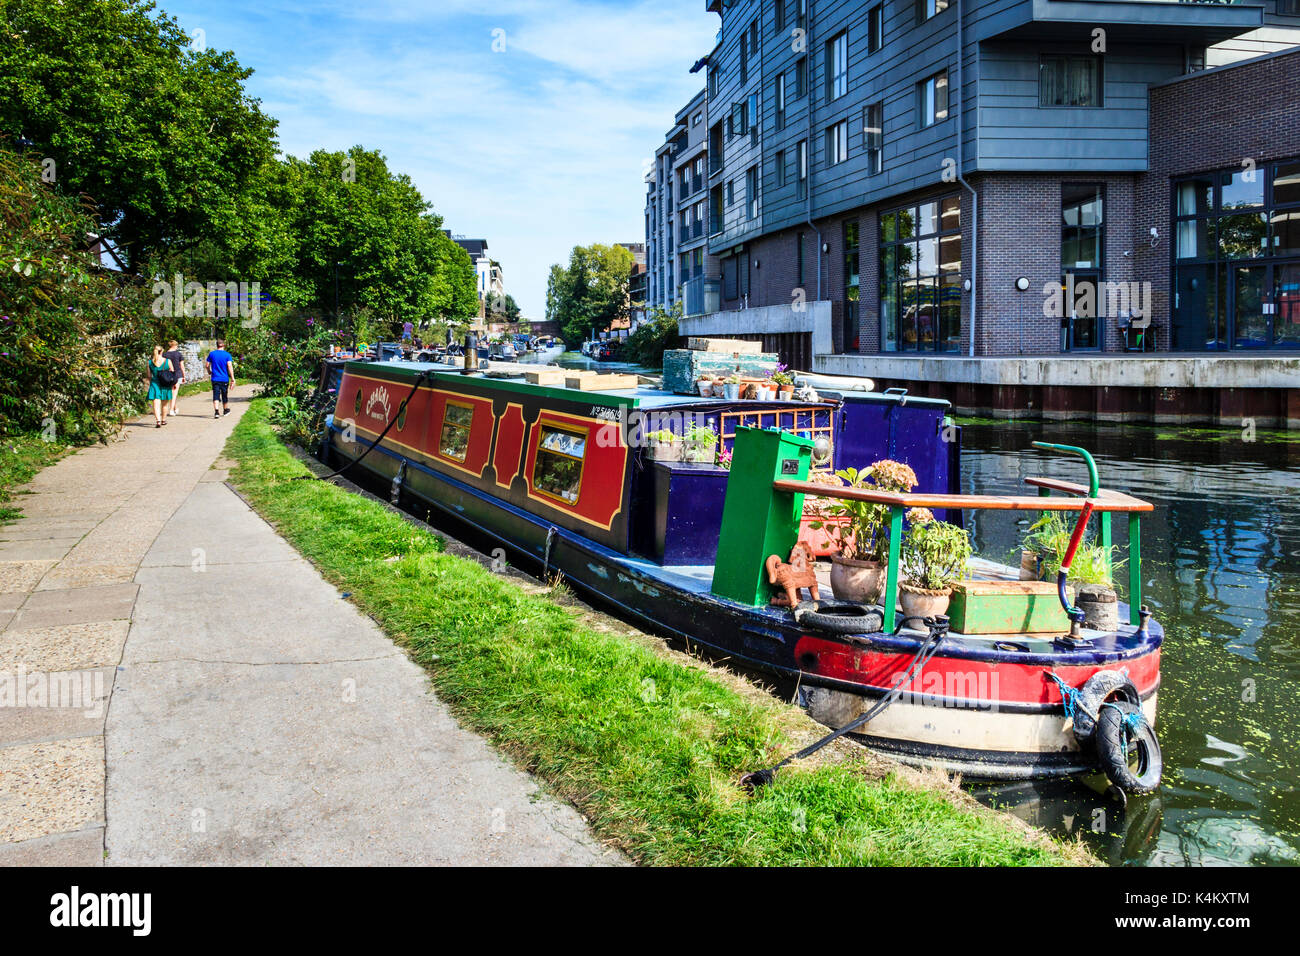 Walkers, joggers and cyclists on the towpath of Regent's Canal, Islington, London, UK - Stock Image